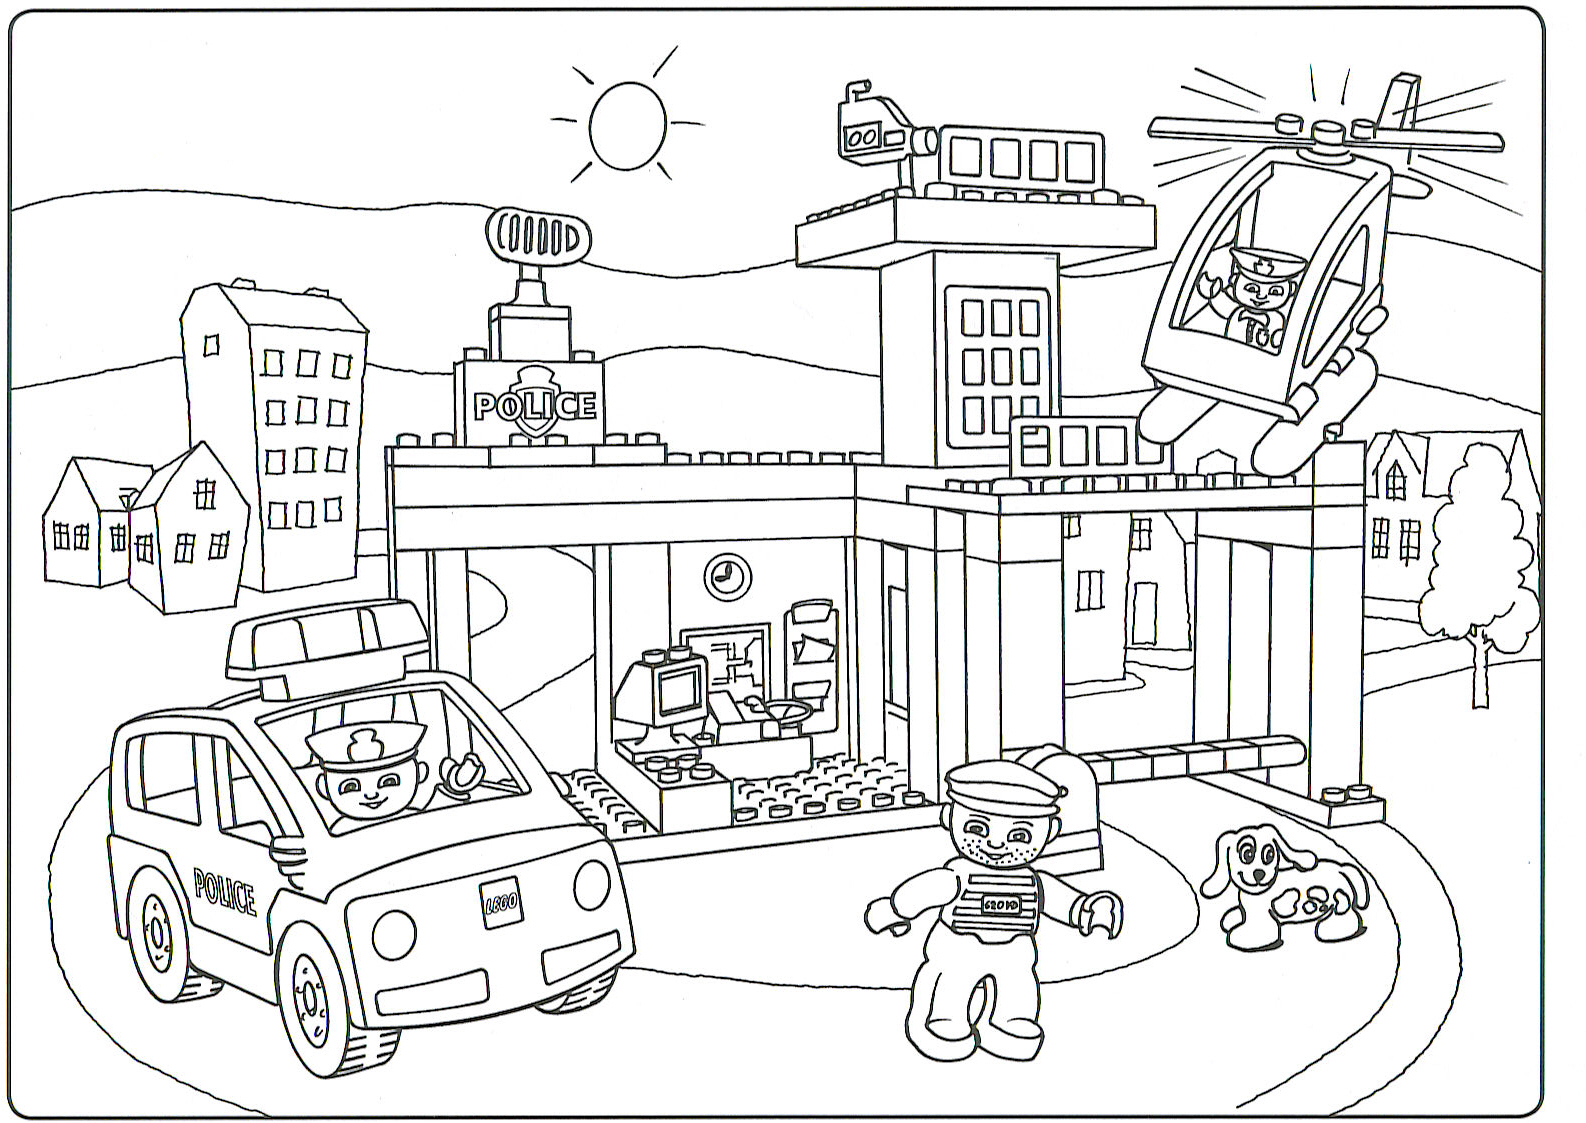 Coloring Pages Lego Train Coloring Pages lego city coloring page eassume com police legocity pages for kids color